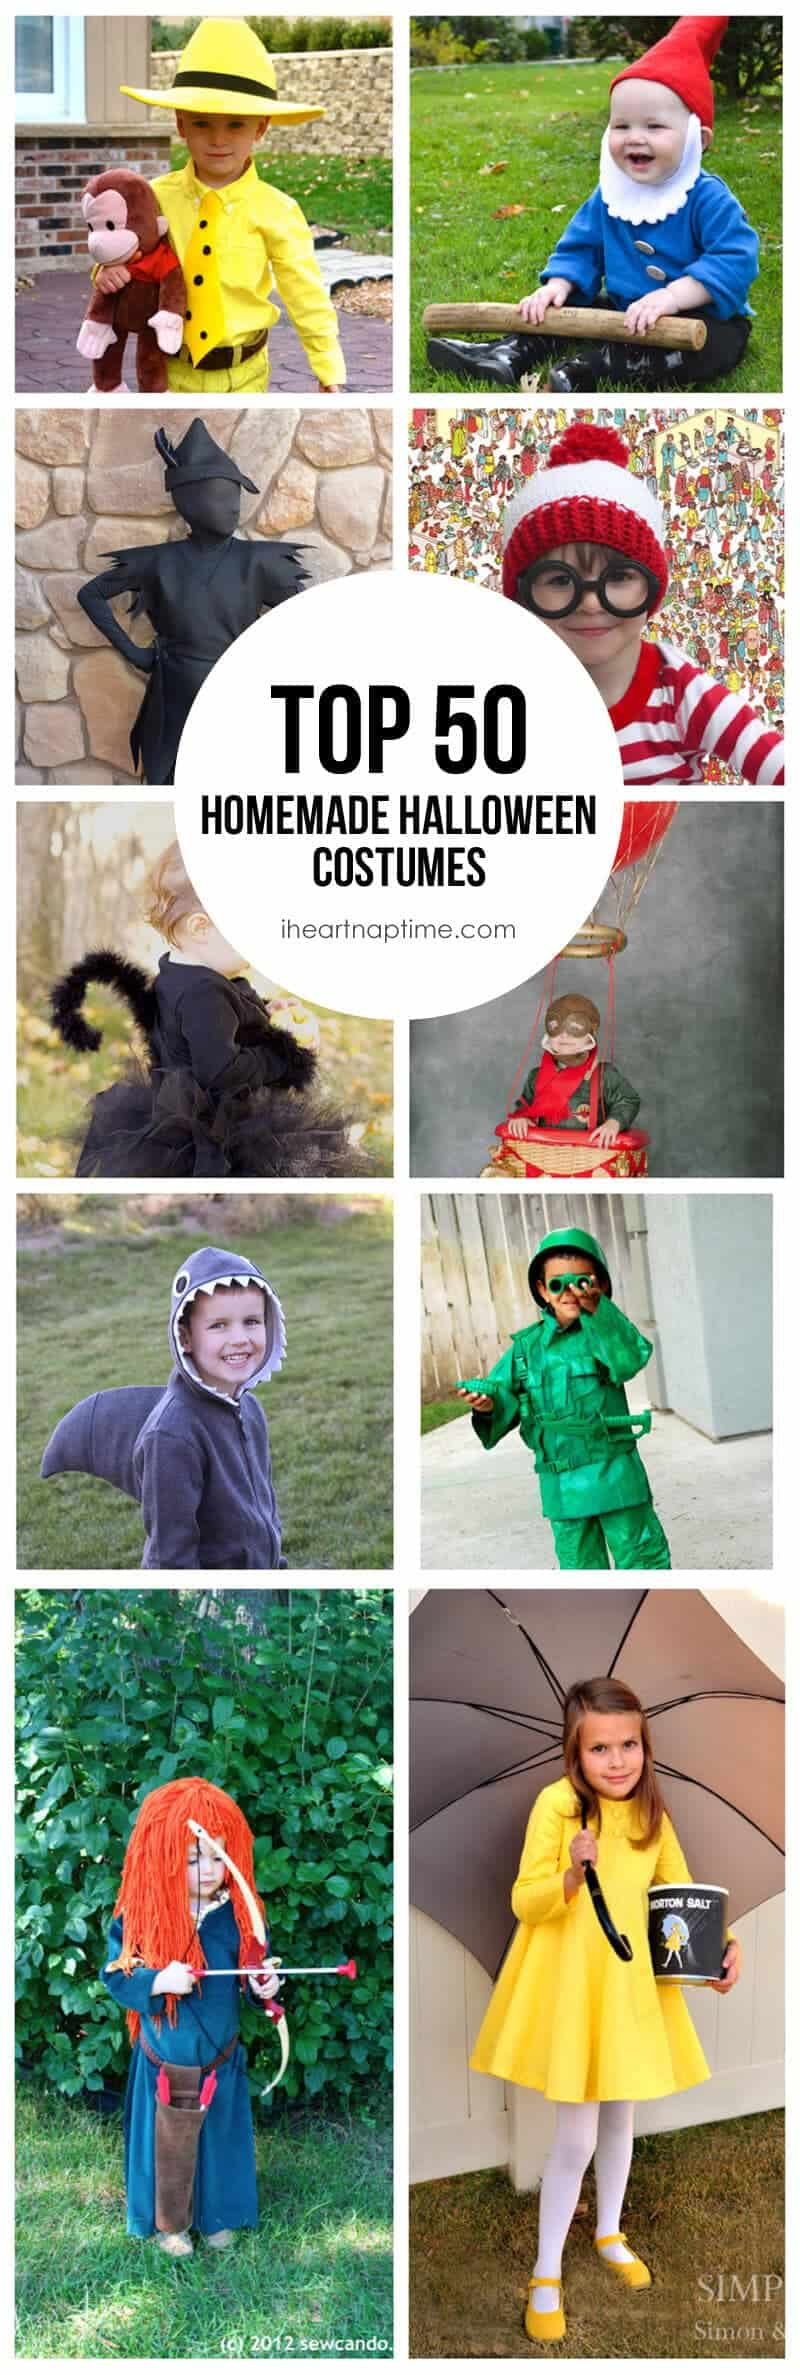 Top 50 Homemade Costumes  sc 1 st  I Heart Nap Time & 50 Homemade Halloween Costumes - I Heart Nap Time